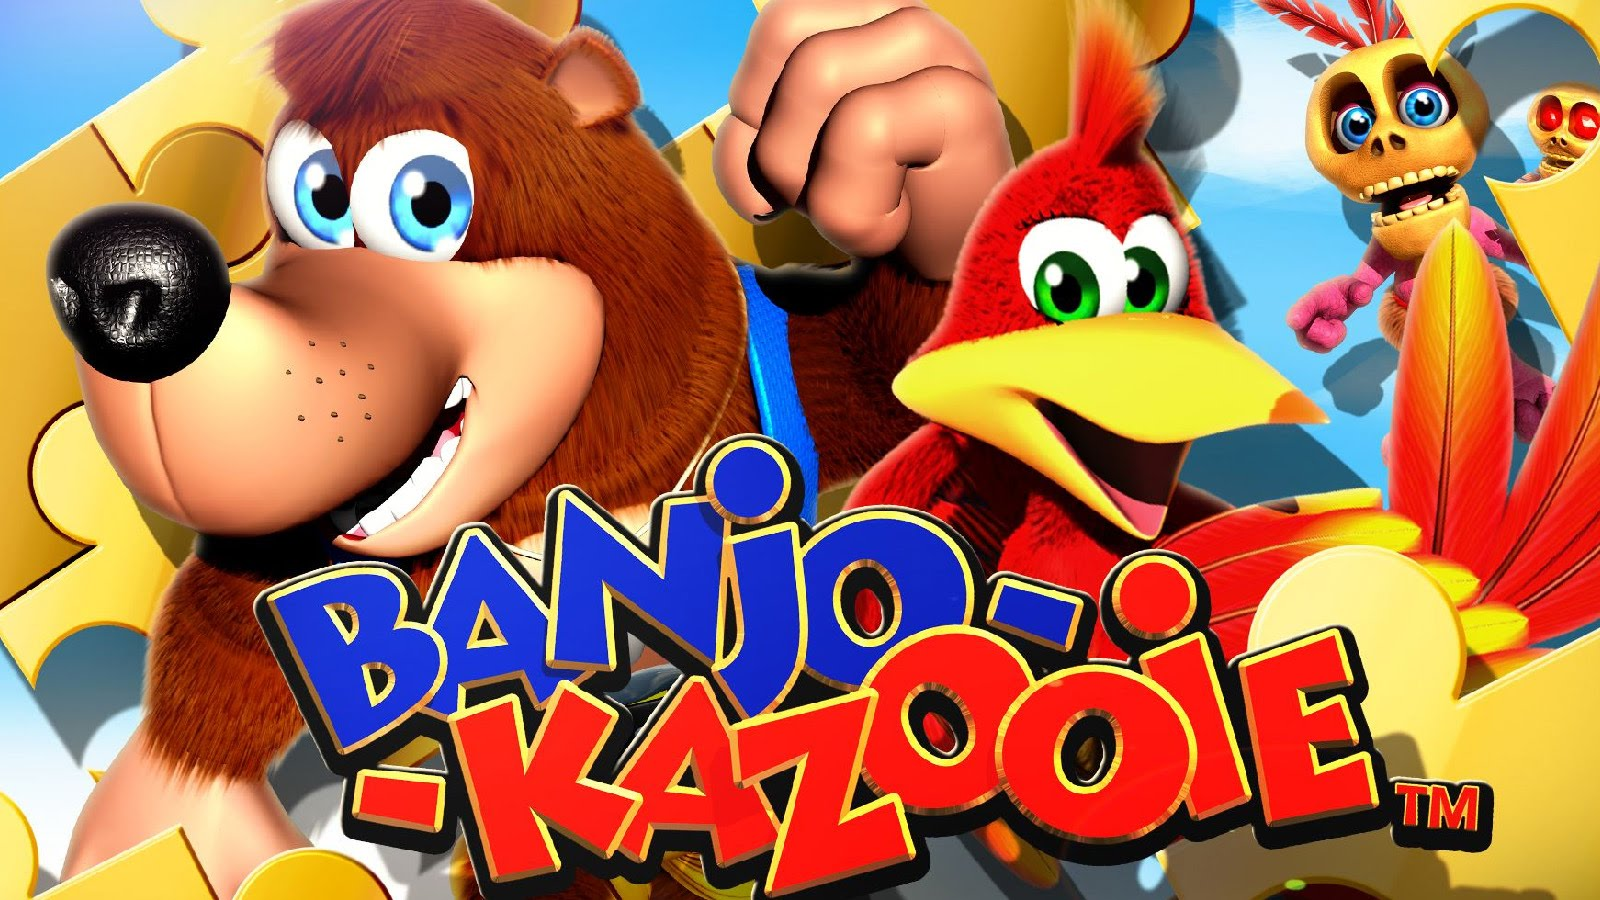 Banjo Kazooie in Super Smash Bros